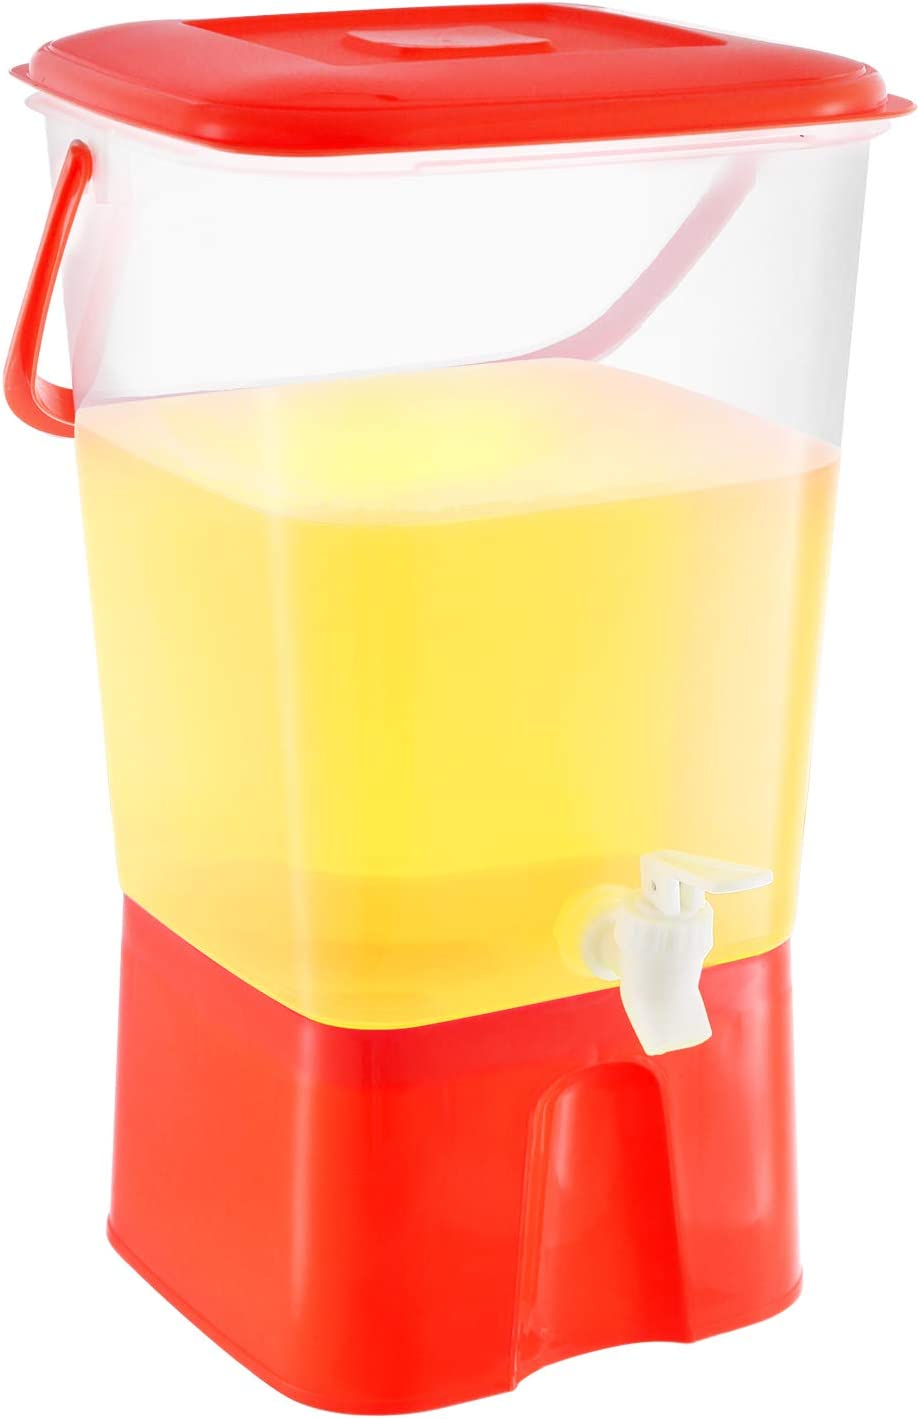 Zilpoo Plastic Beverage Dispenser with Stand & Spigot 2.11 Gallon (8L.) Cold Drink, Lemonade, Iced Tea, Juice Server Container for Parties, BPA Free, Red